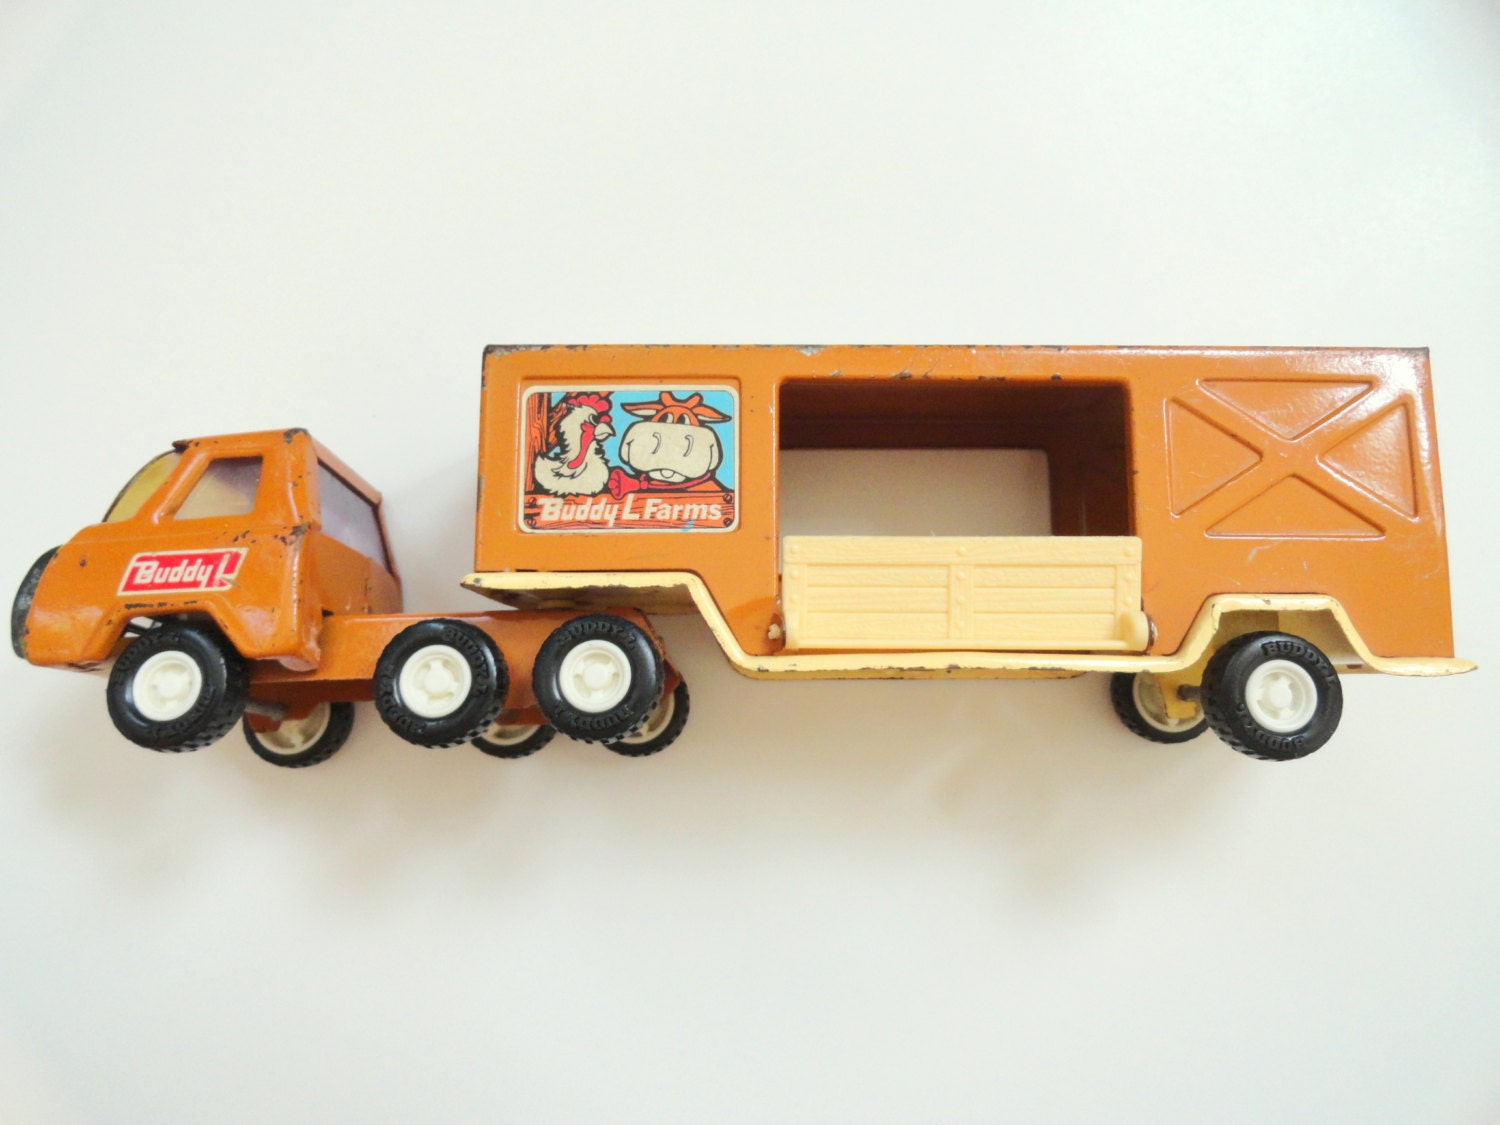 Toy Semi Tractor : Toy semi truck and trailer buddy l farms vintage